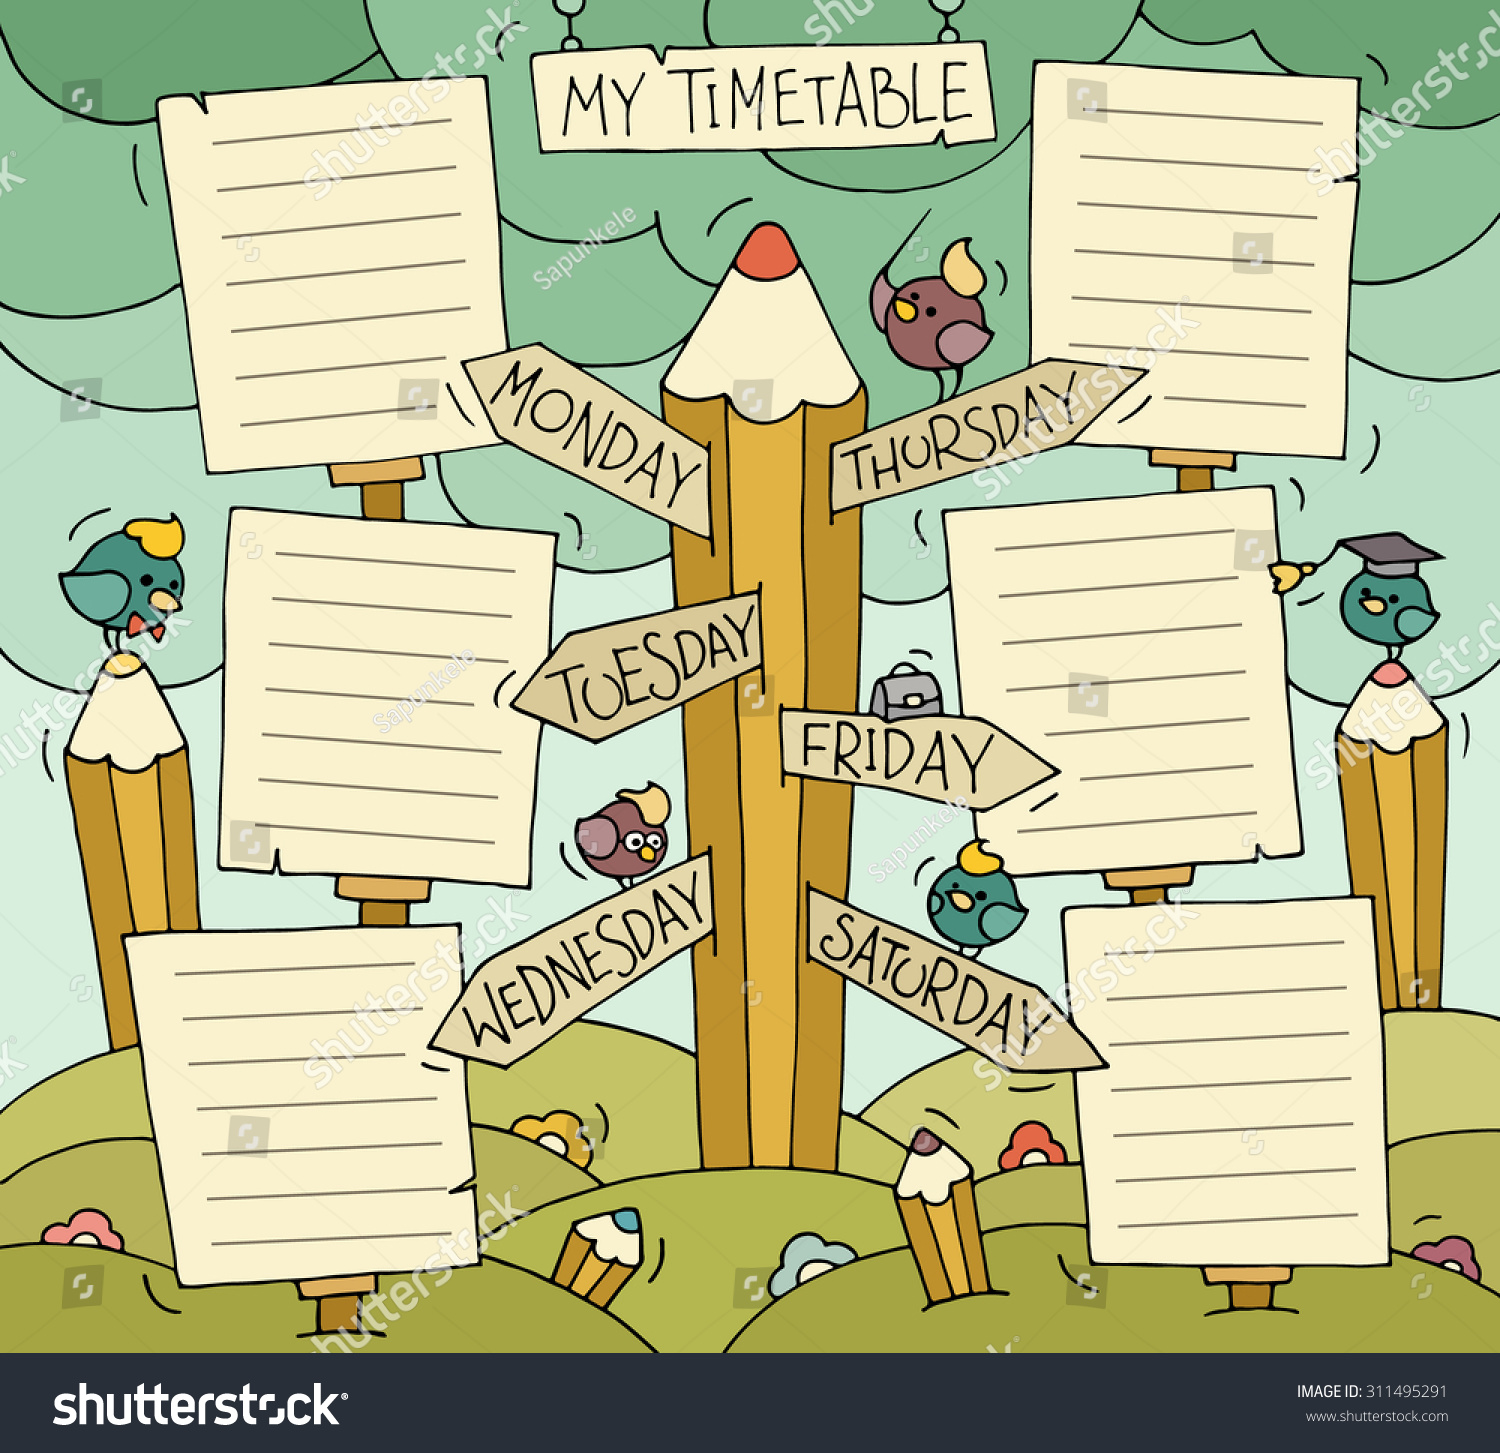 Quotes On School Time Table: Cartoon School Timetable Little Cute Bird Stock Vector